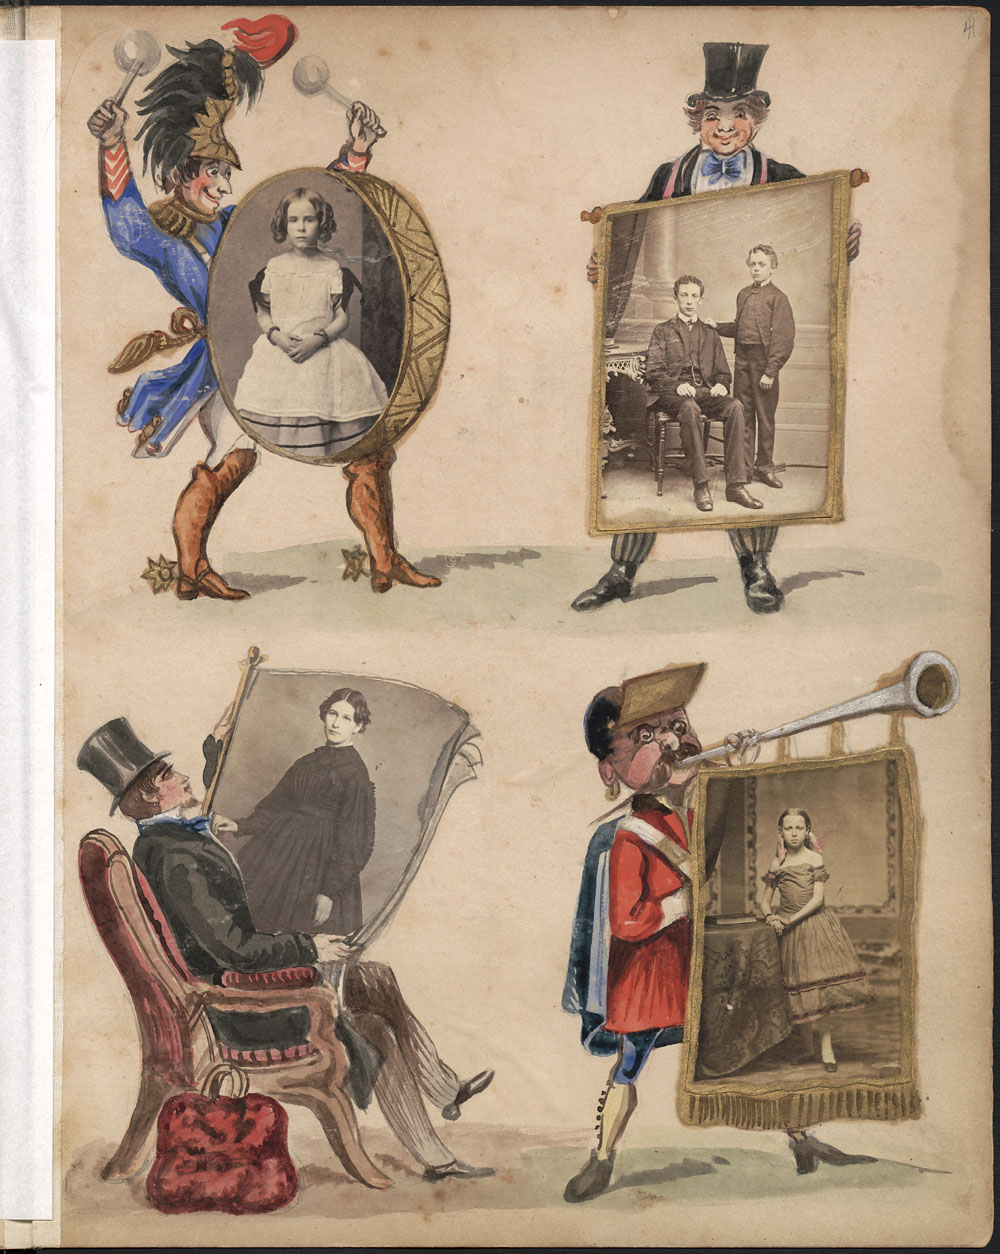 An album page of coloured images that include a man beating a drum, a man holding a poster, a man sitting in a chair reading a newspaper and a man blowing a horn with a banner attached. There are four photographs, embedded in the drum, poster, newspaper and banner.